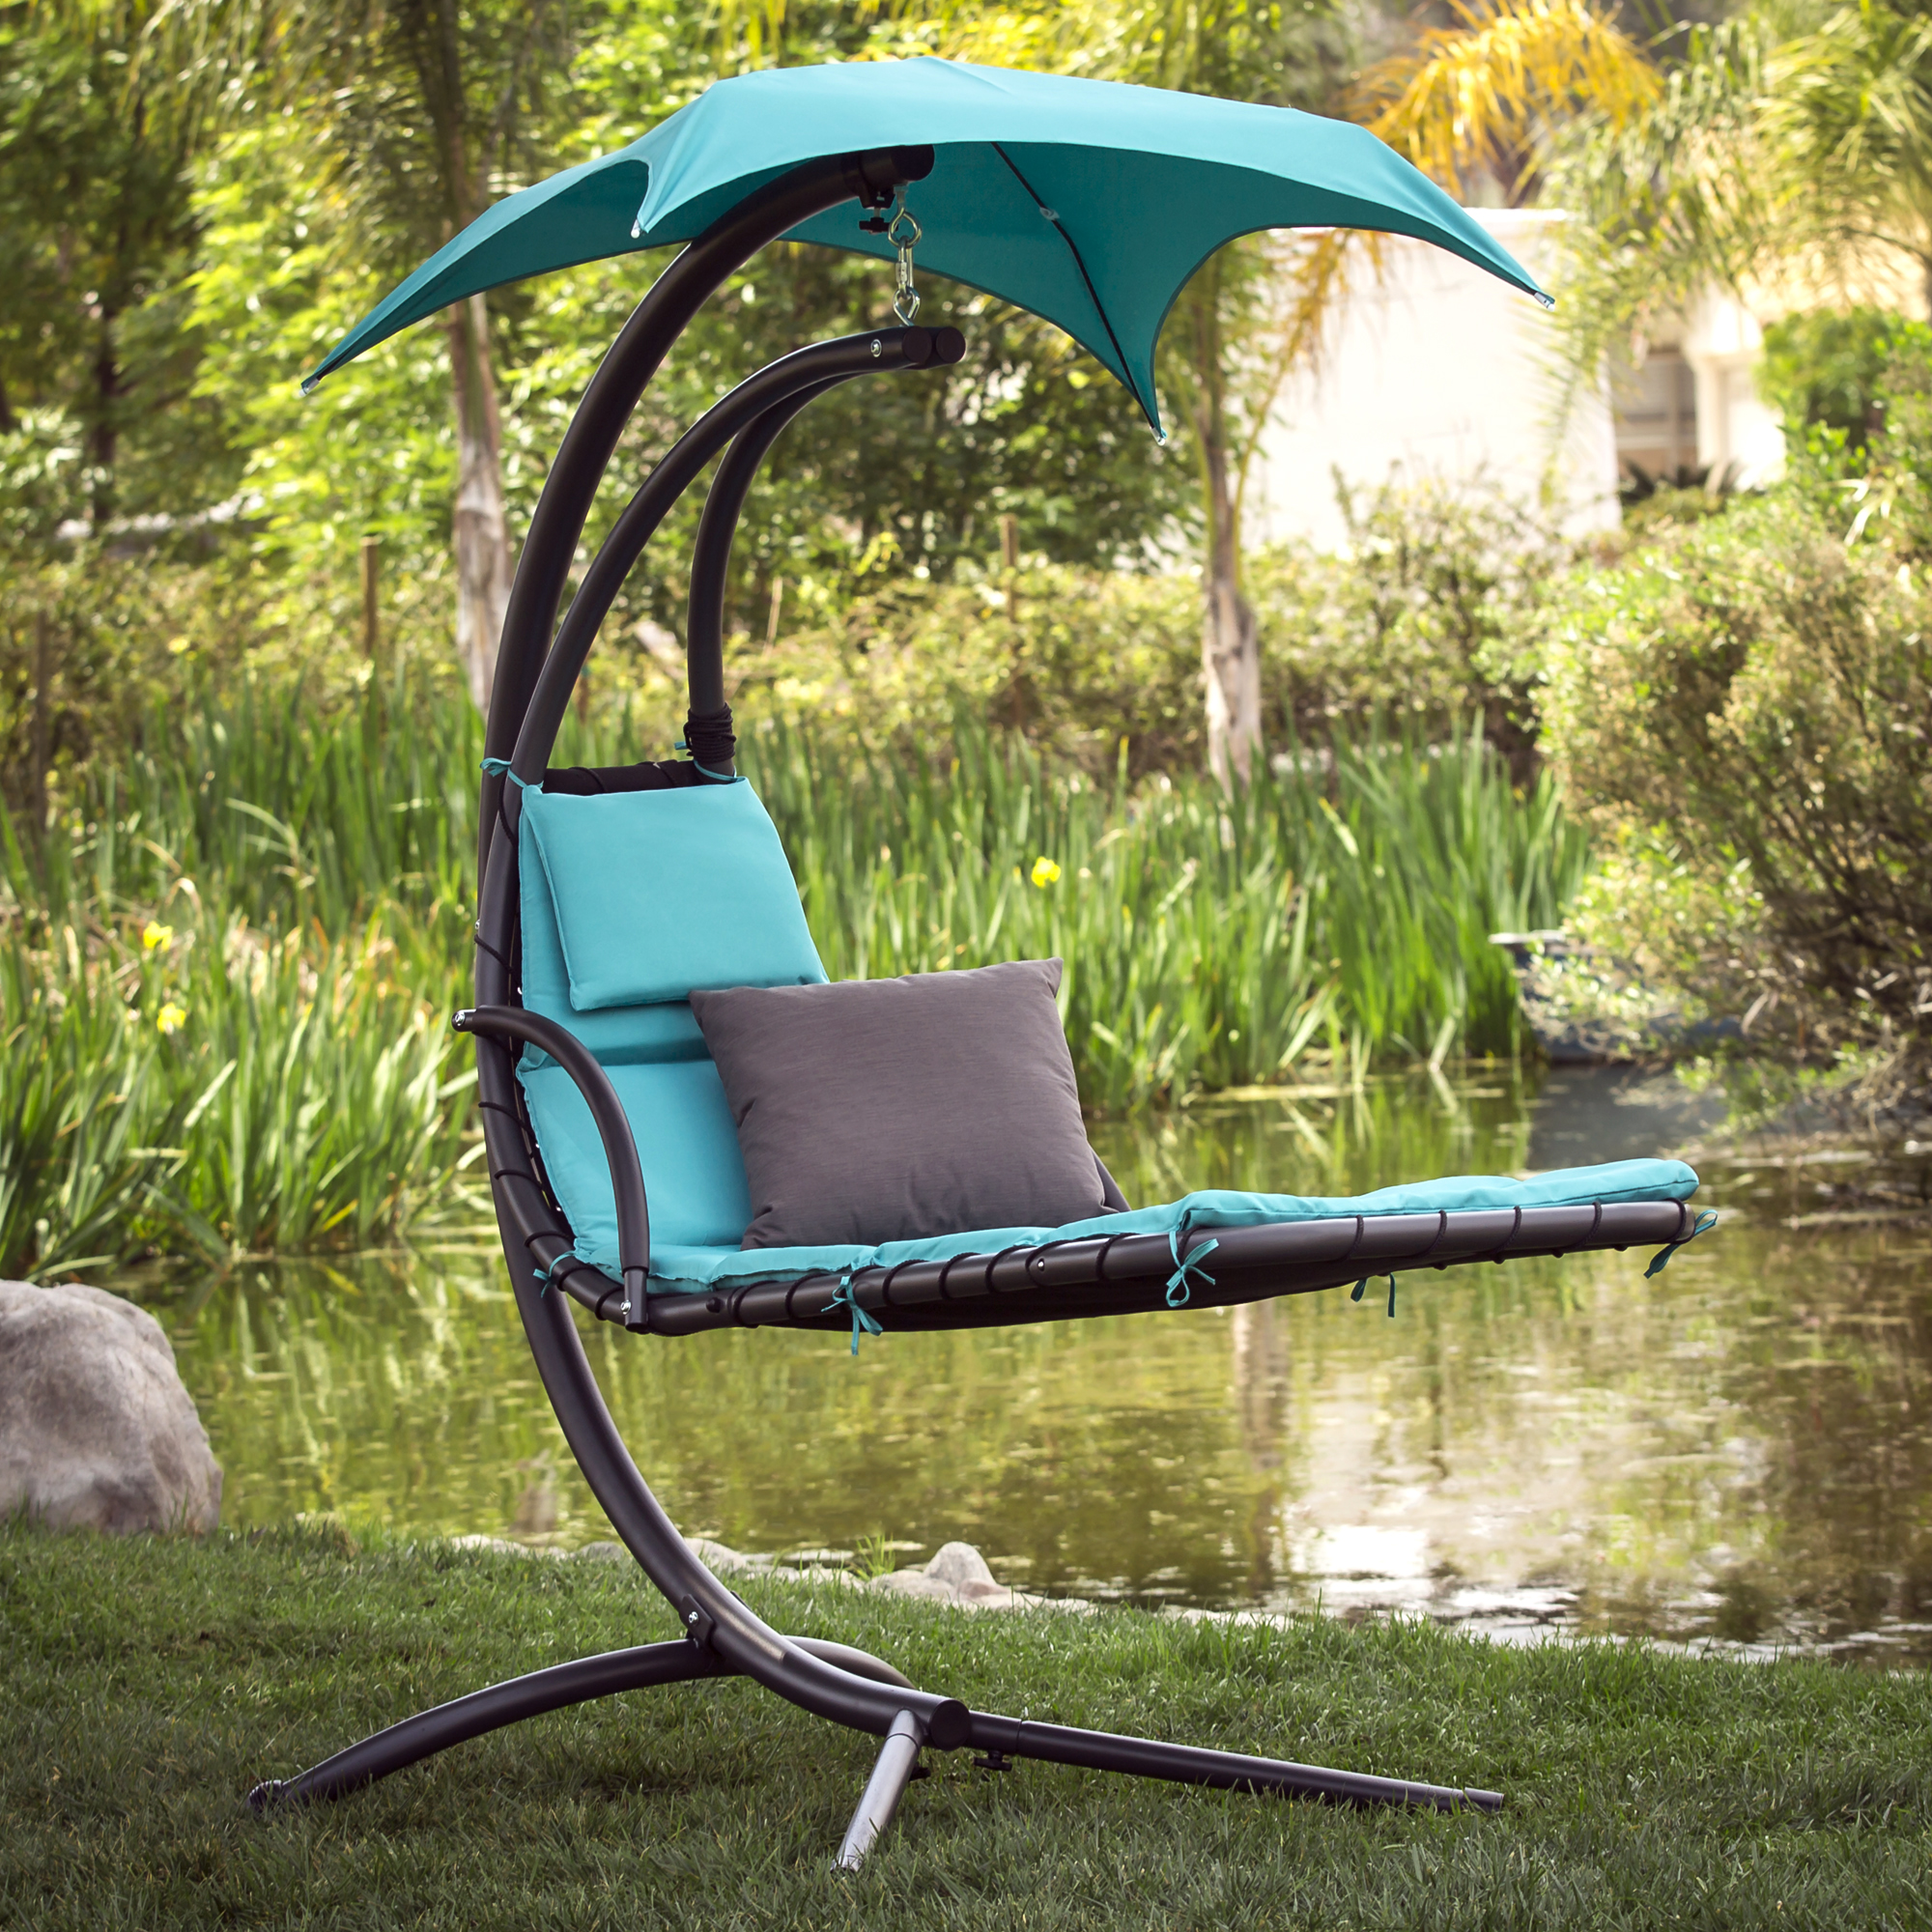 BCP Hanging Chaise Lounger Chair Arc Stand Air Porch Swing Hammock Canopy by Best Choice Products